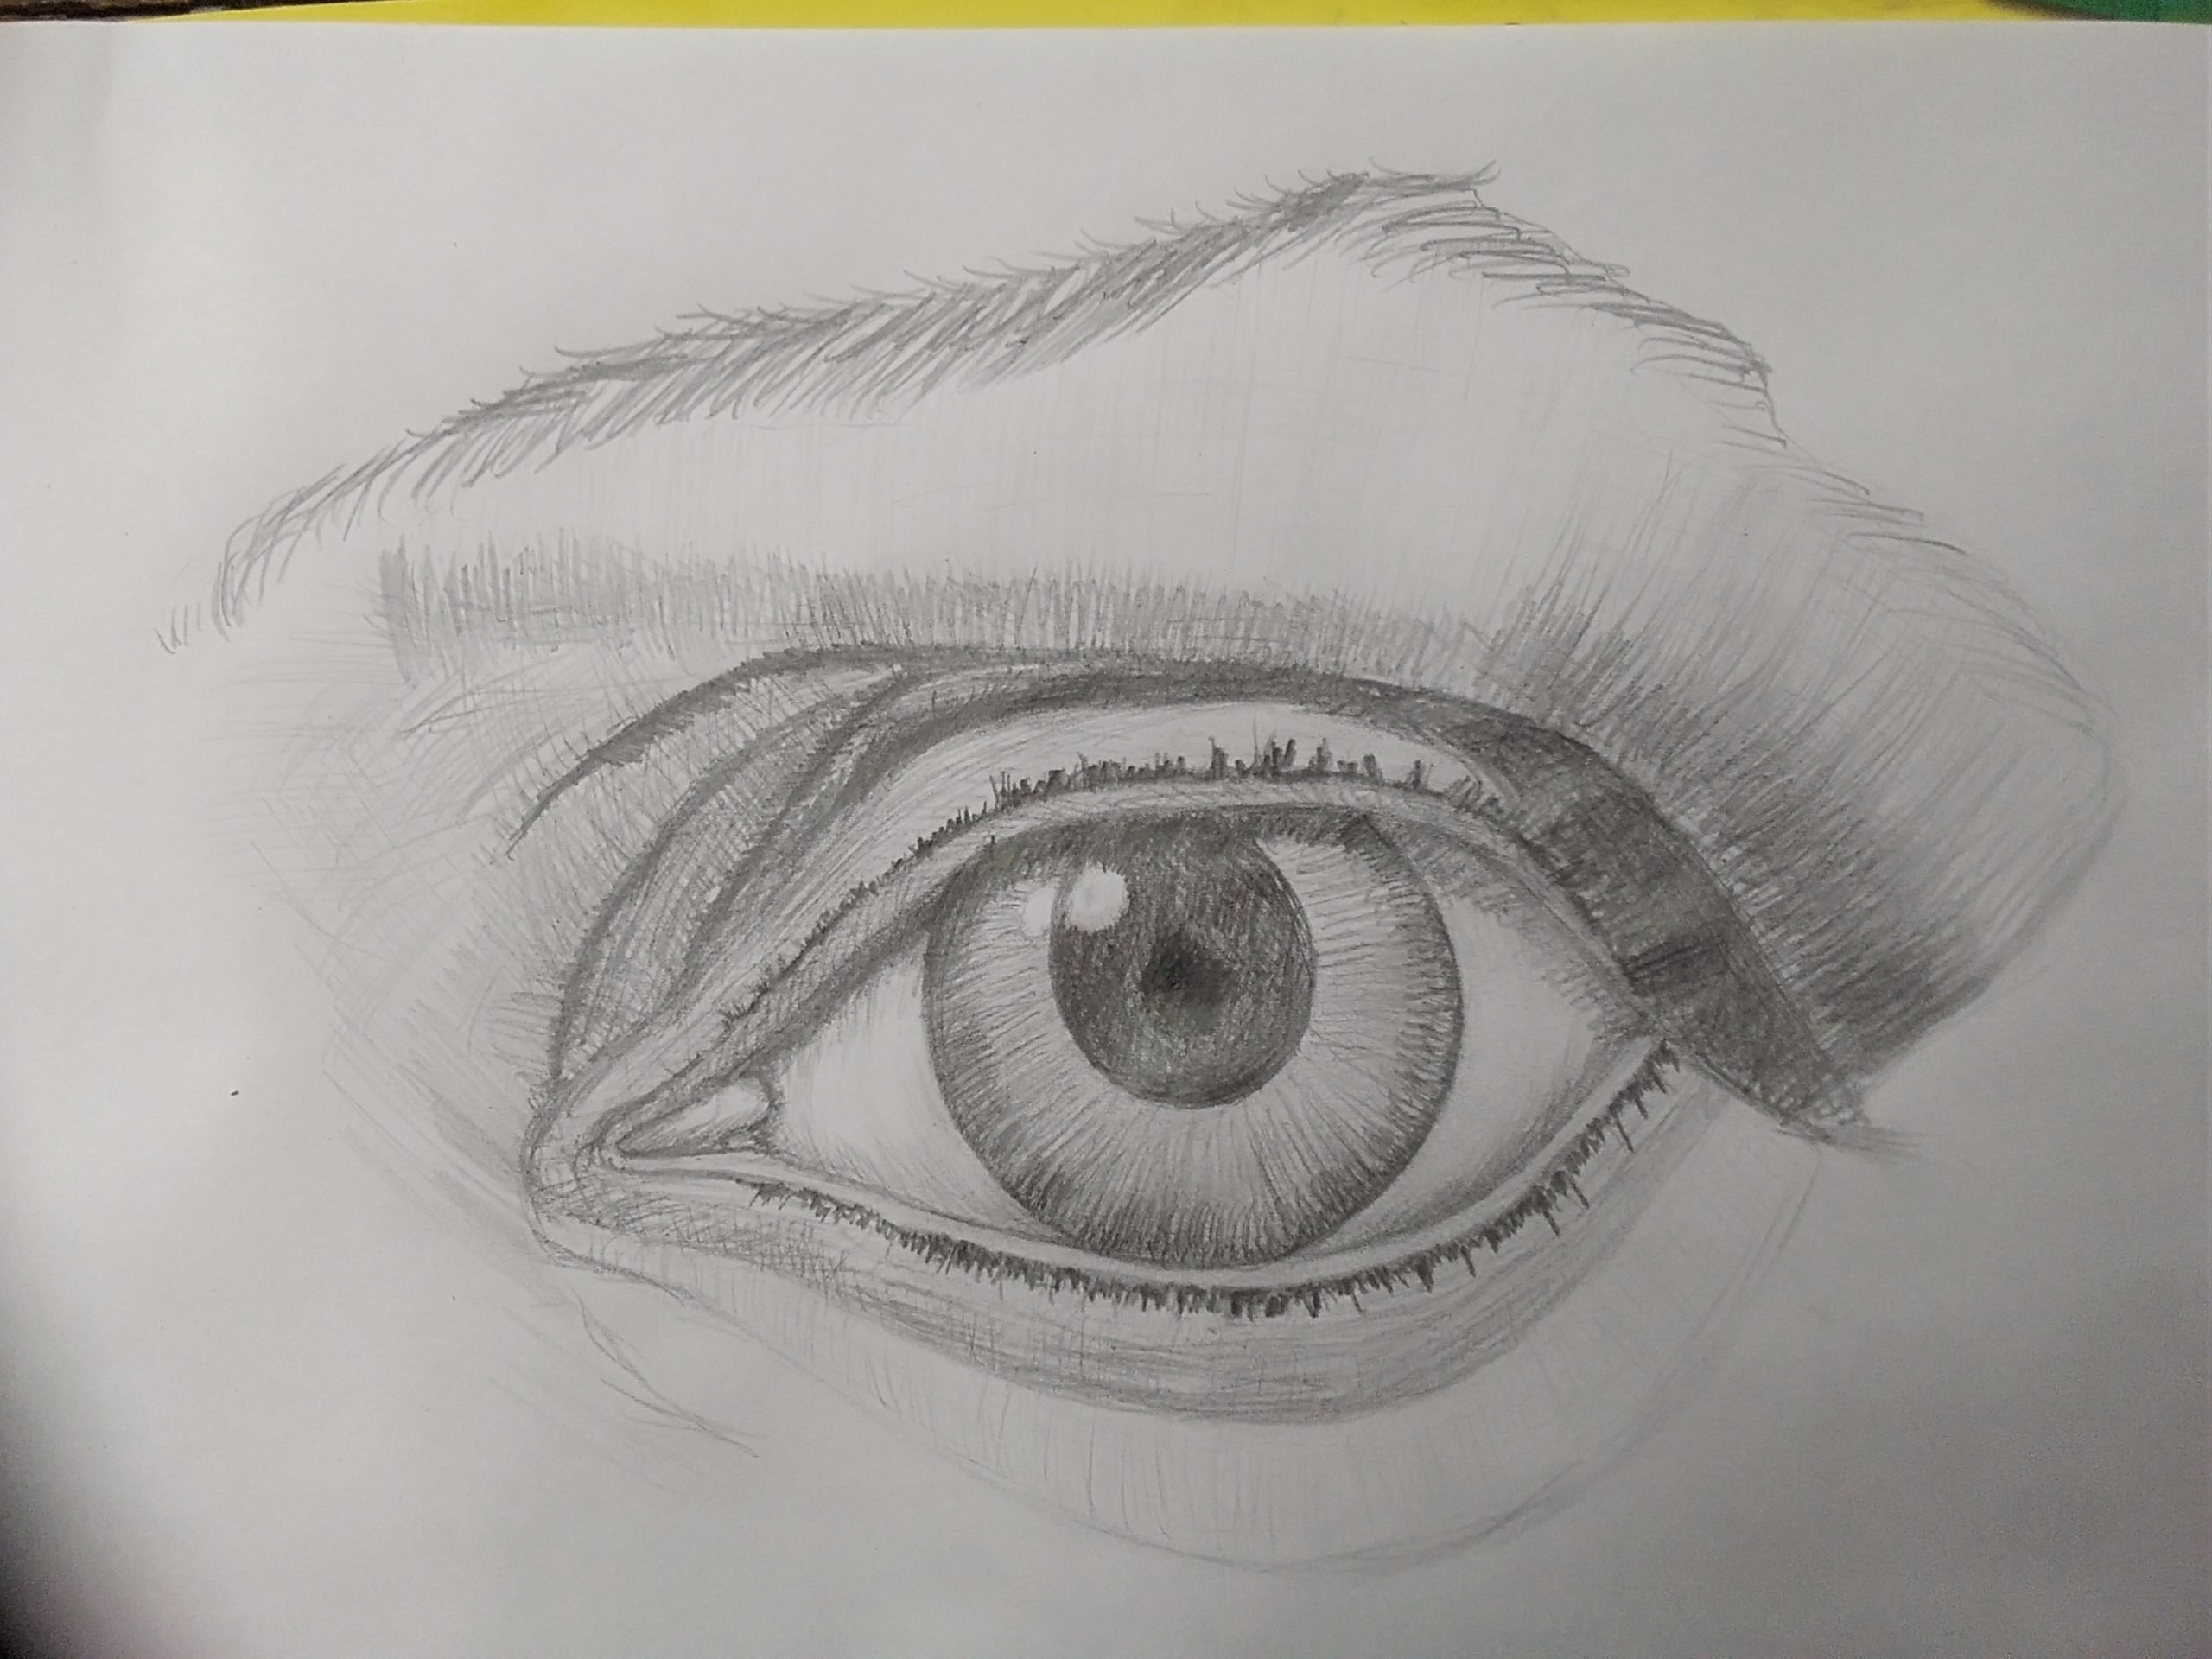 Studying how to draw portrait